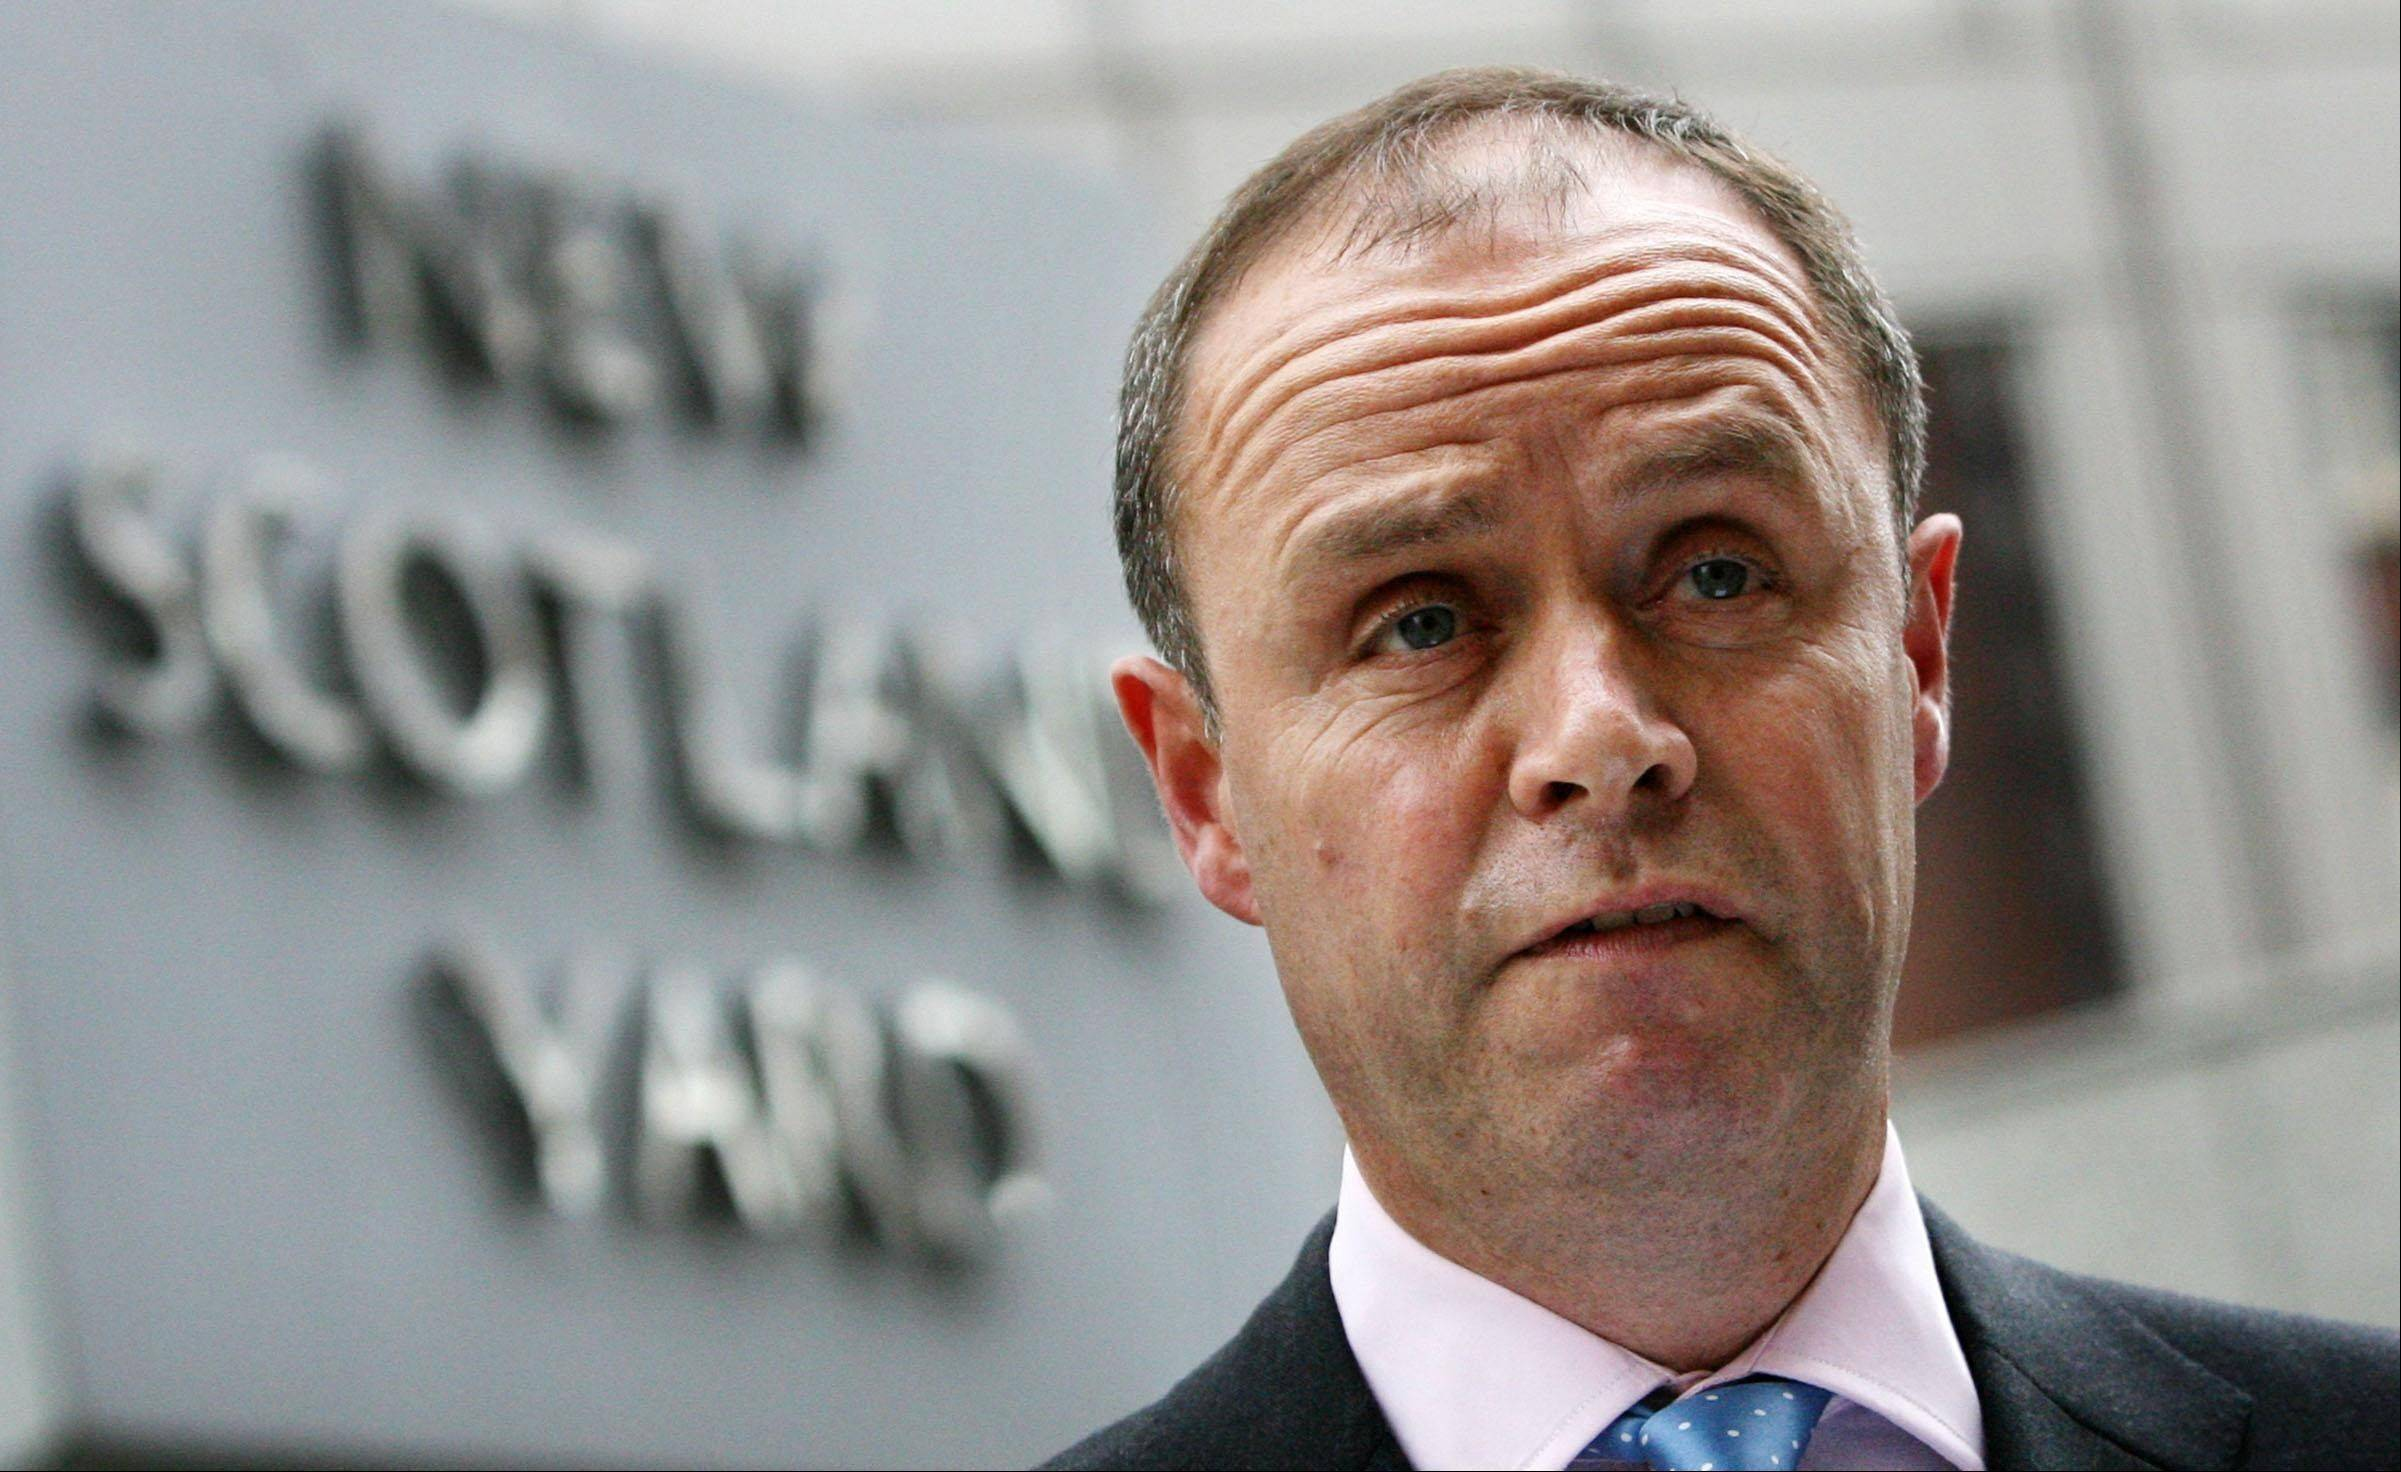 London's Metropolitan Police Assistant Commissioner John Yates resigned Monday amid the firestorm surrounding the phone hacking scandal. He made a decision two years ago to not re-open police inquiries into phone hacking, saying he did not believe there was any new evidence to consider.